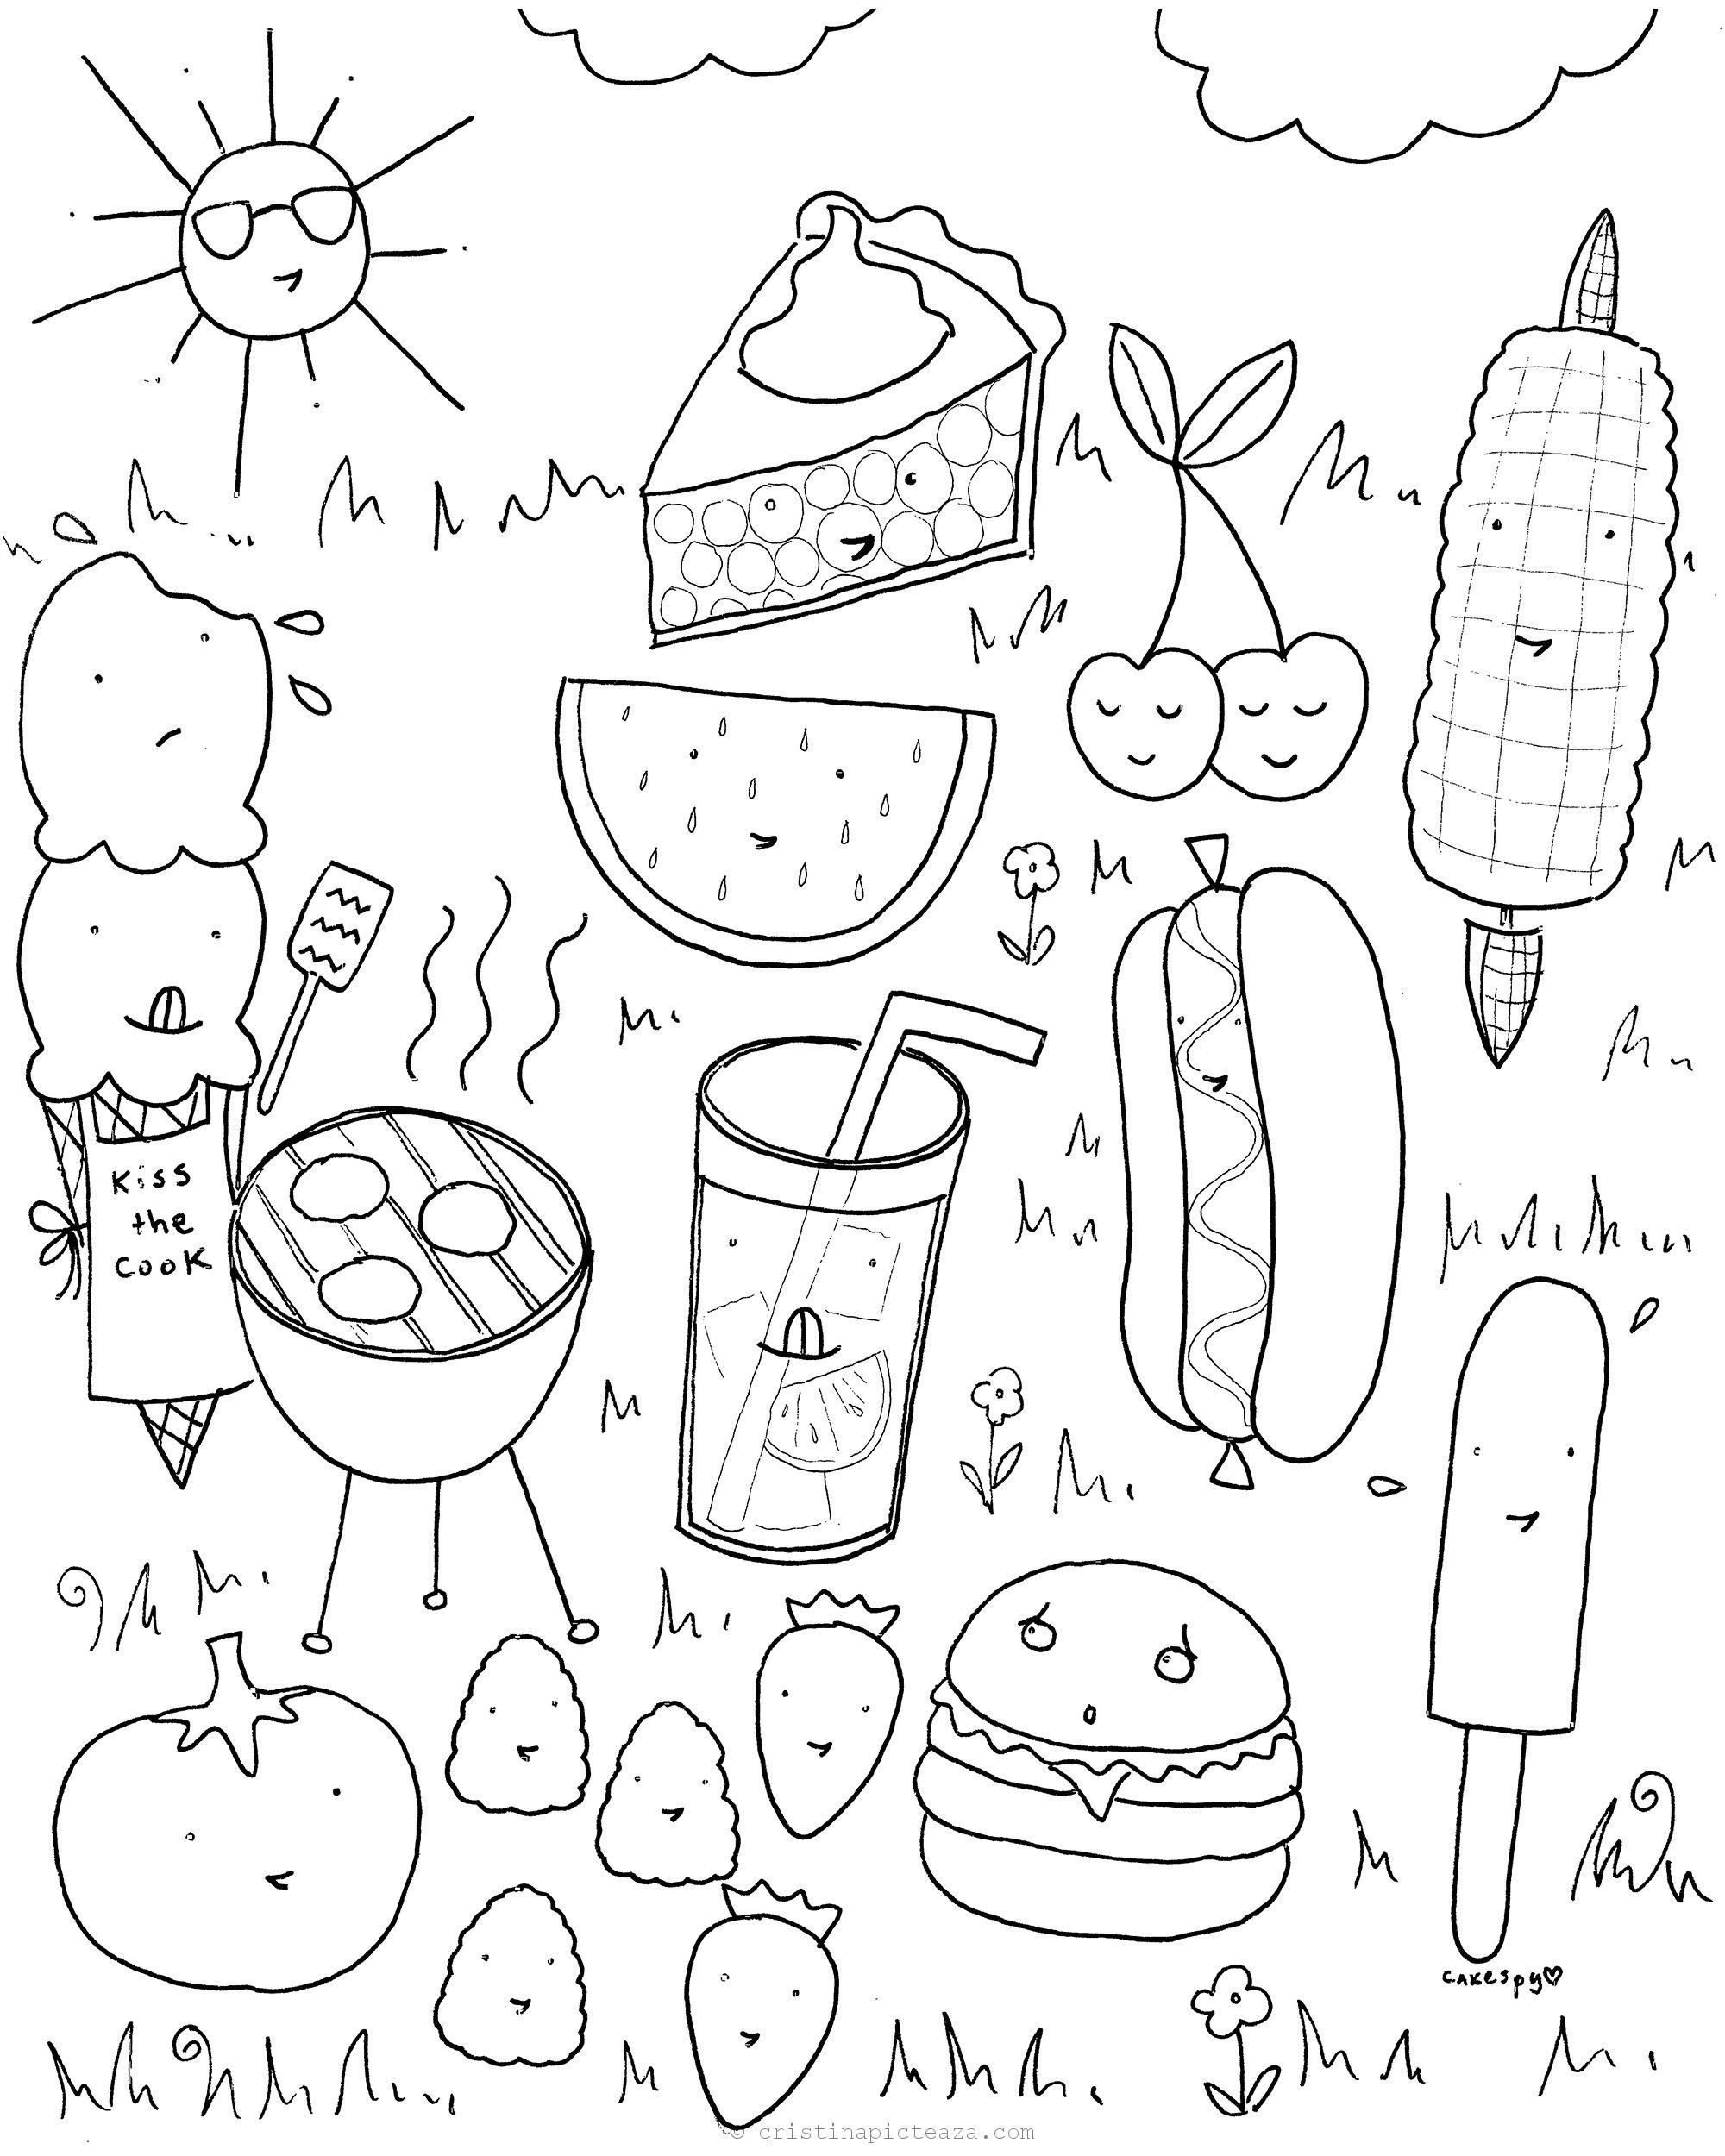 Summer Coloring Pages – Summer drawings for coloring and painting